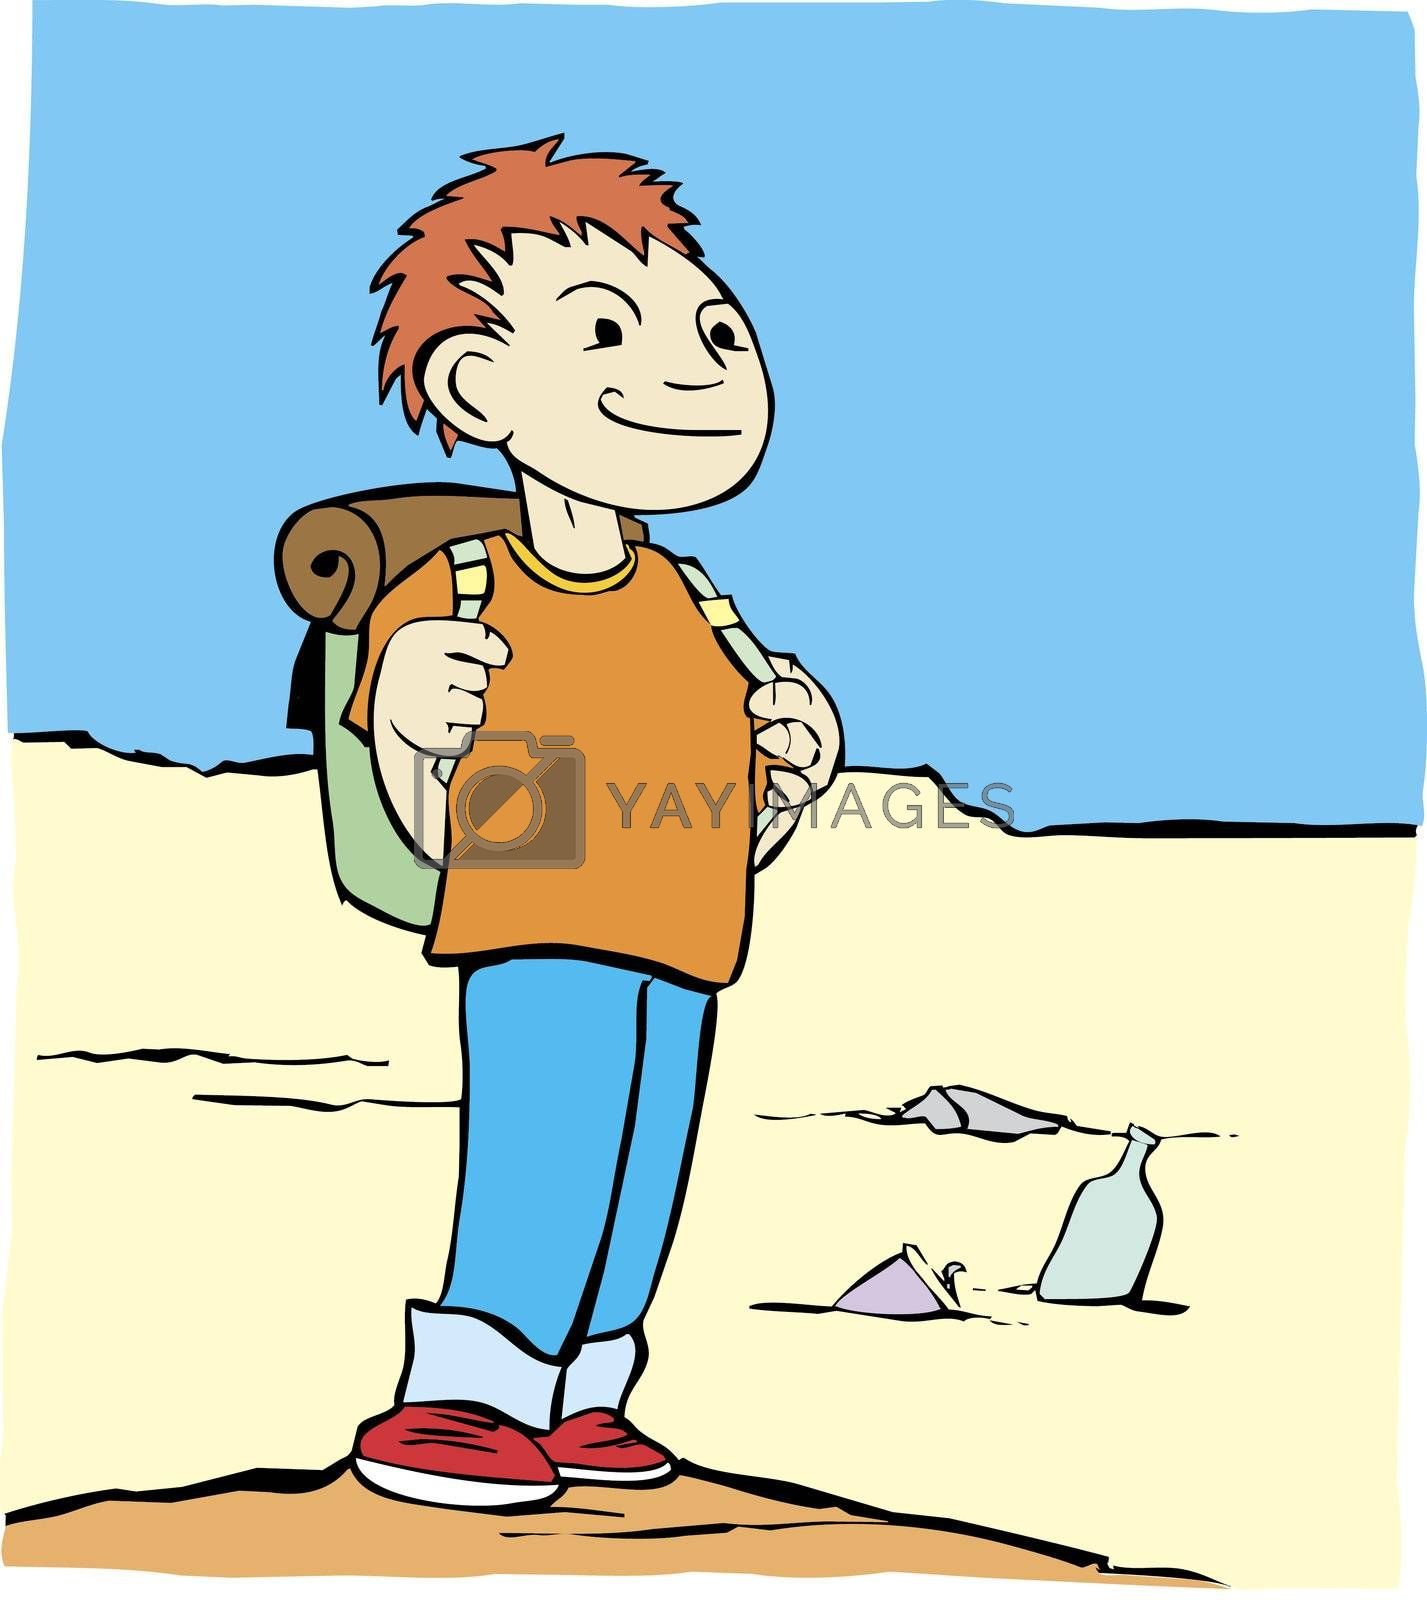 Cartoon image of a boy with a backpack in a sandy desert.